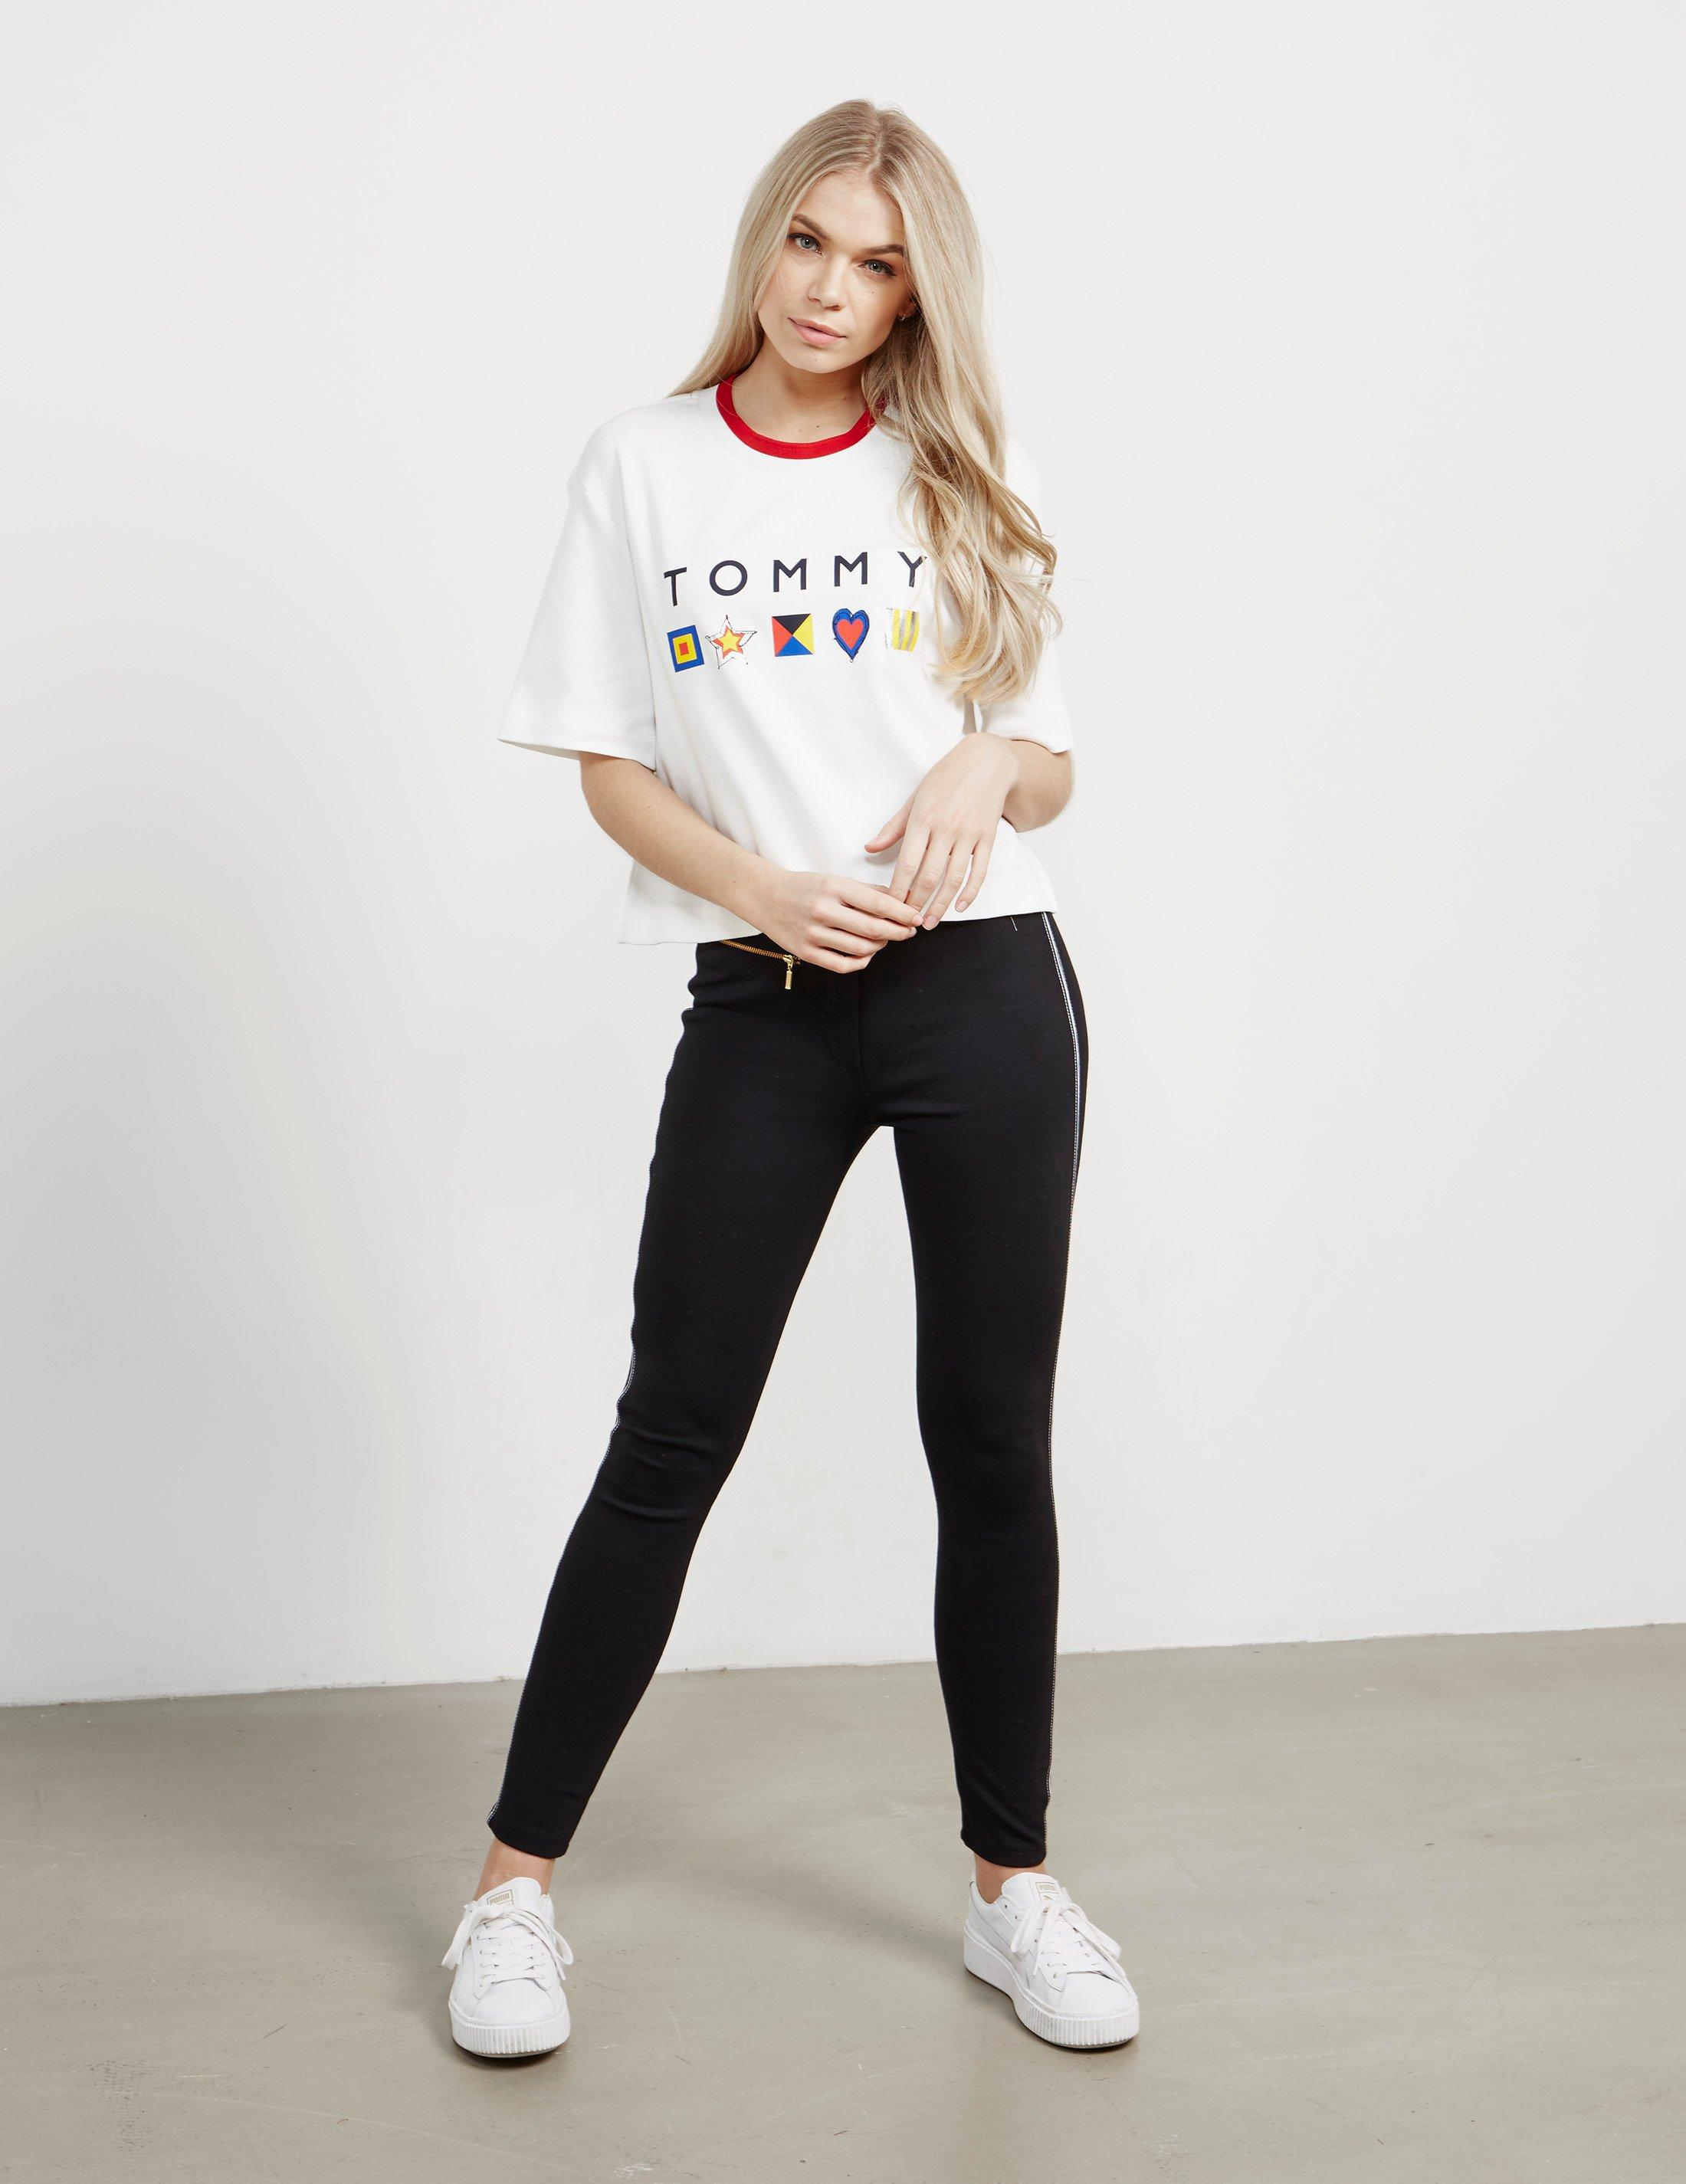 b3f574749 Tommy Hilfiger Womens Abby Short Sleeve T-shirt - Online Exclusive ...